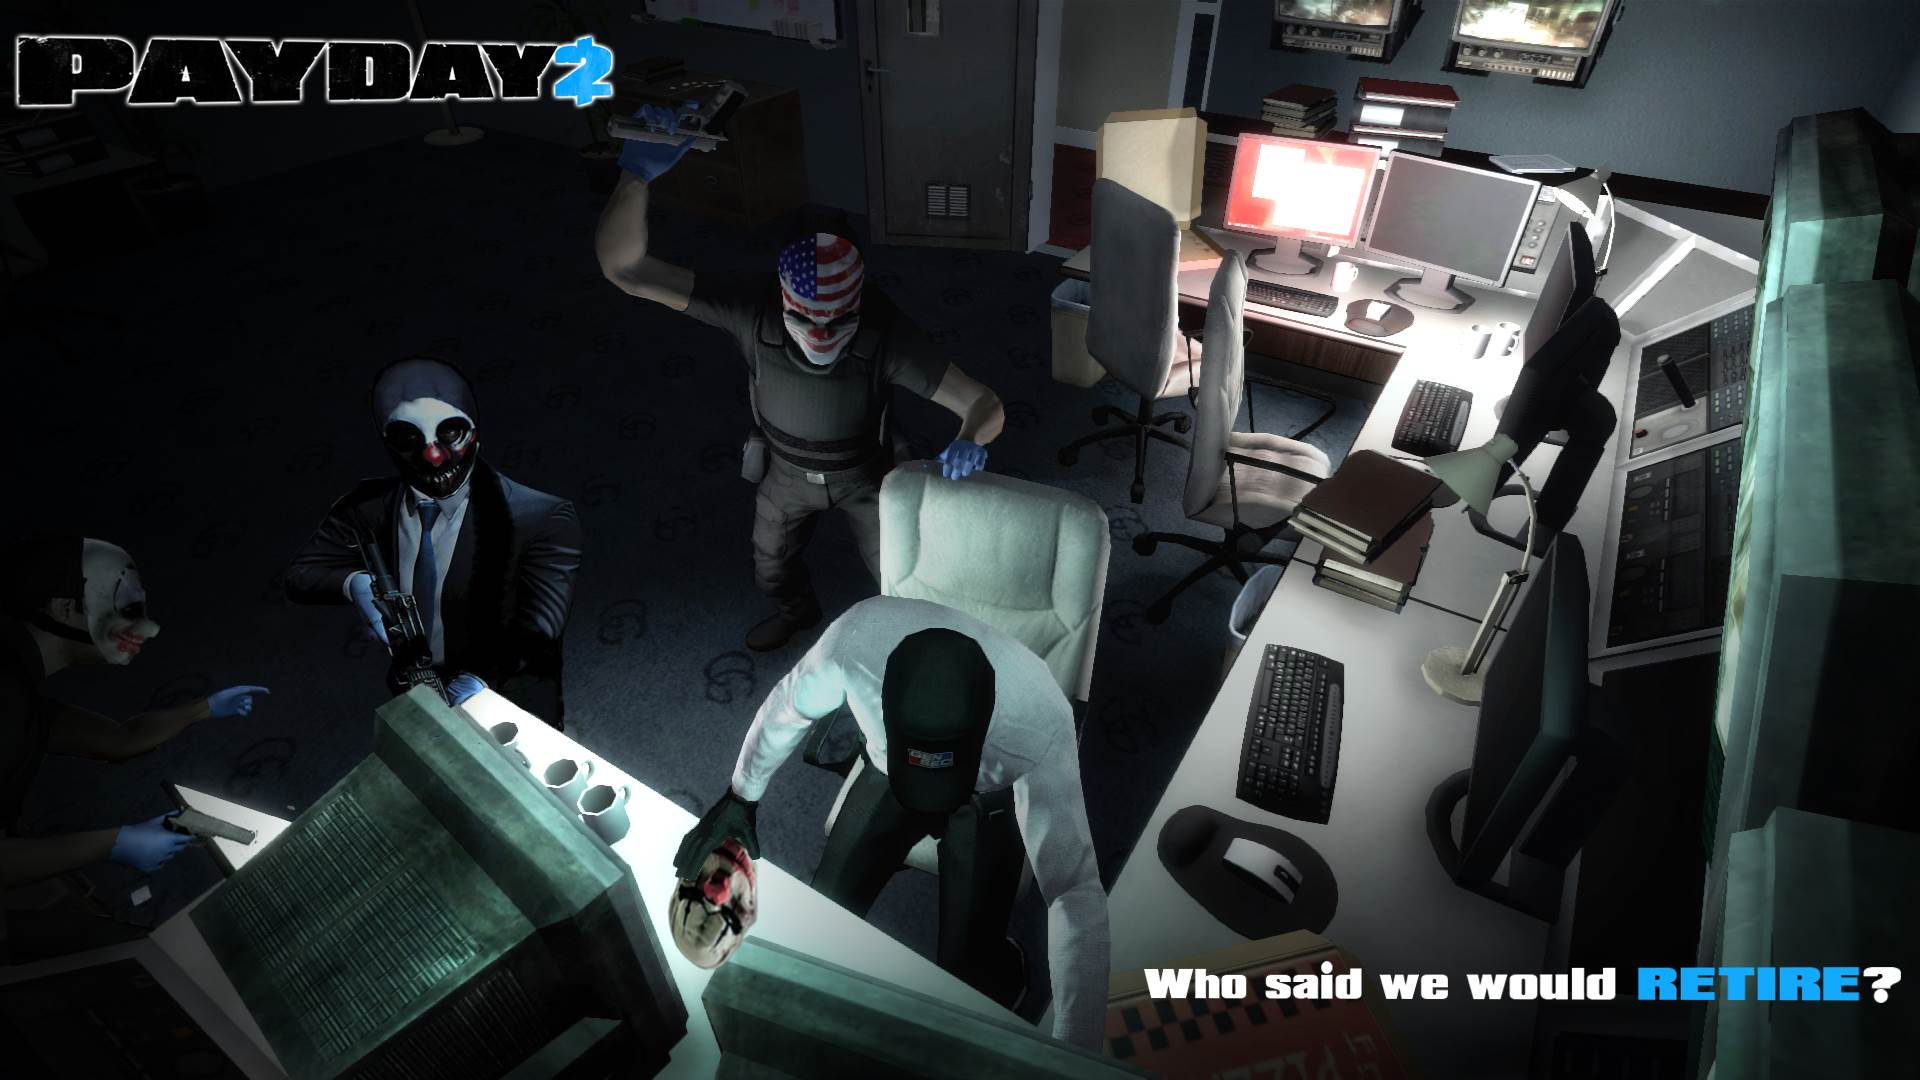 Payday 2 Wallpapers In 1080p Hd